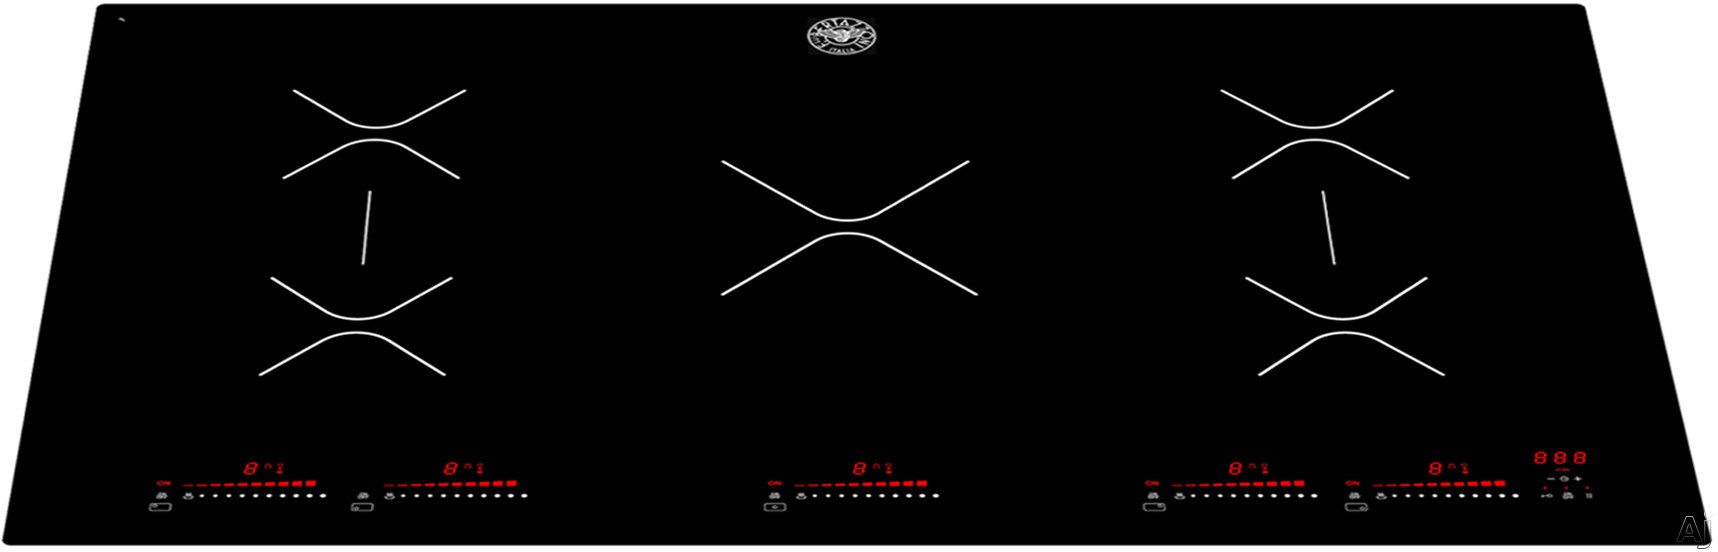 Bertazzoni Professional Series P365IAE 36 Inch Induction Cooktop with Booster Function, Touch Controls, Two Bridge Cooking Zones, Residual Heat Indicators and Ceramic Glass Surface